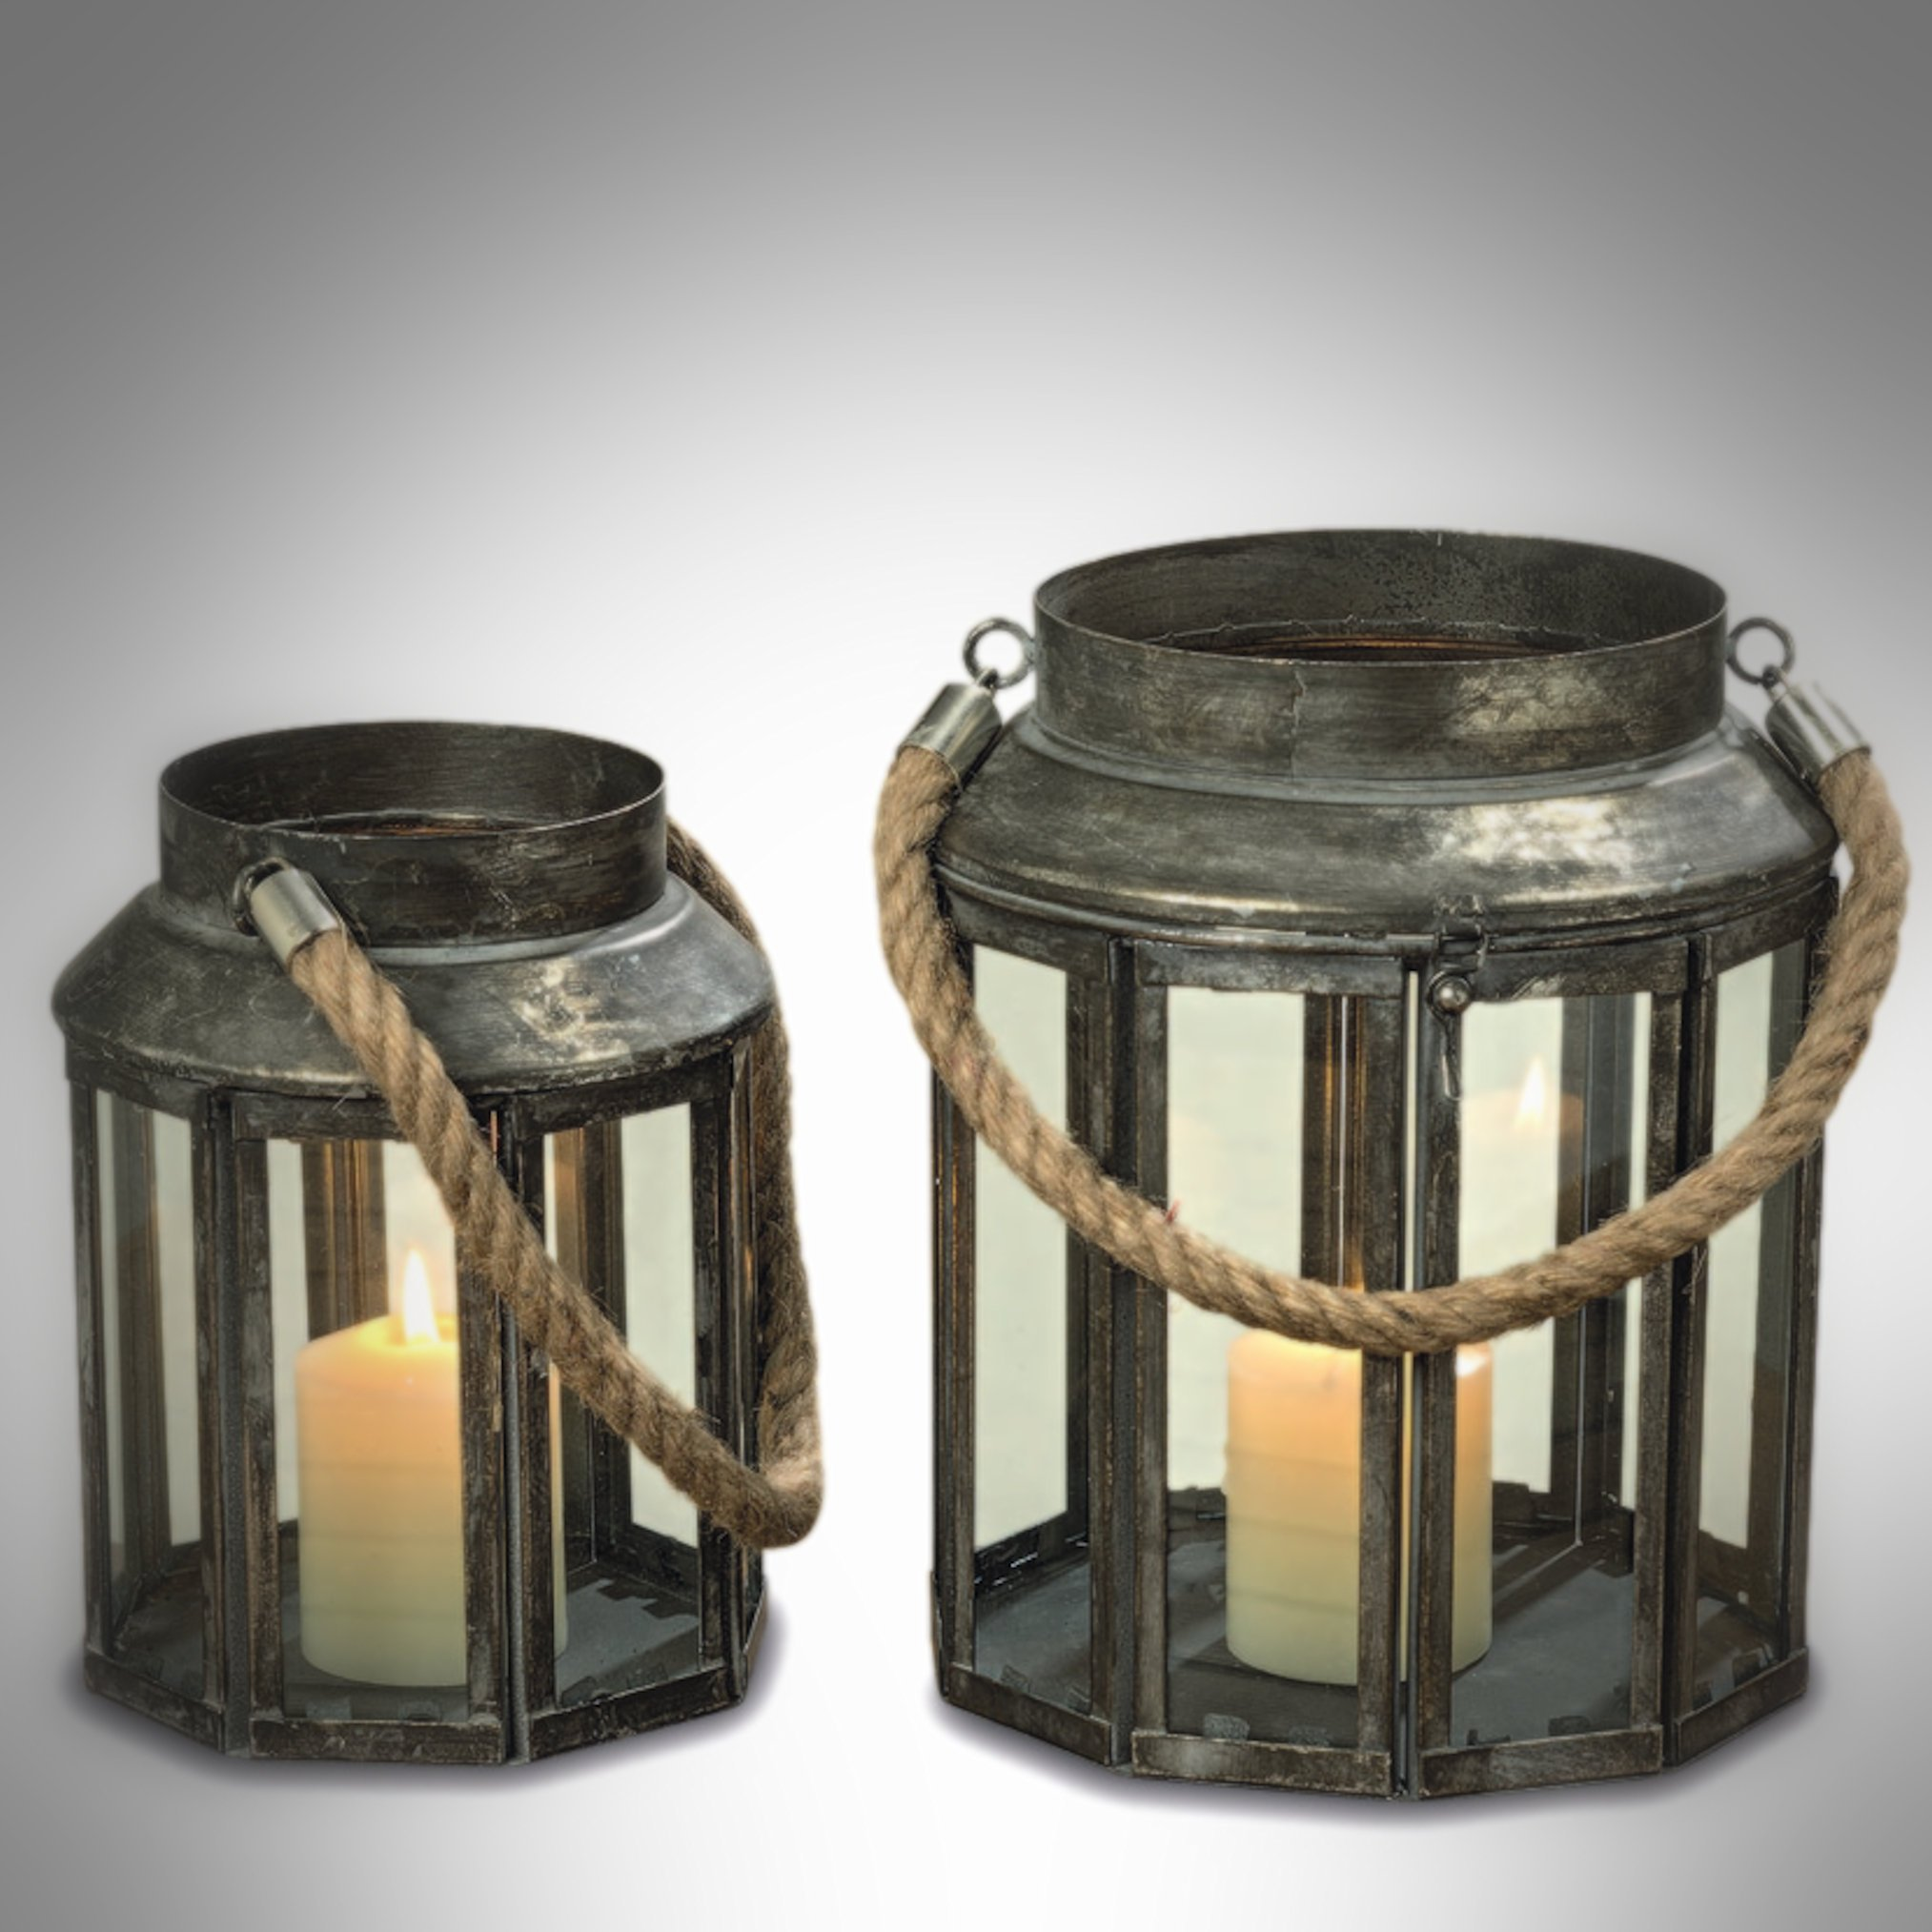 The Mariner's Candle Lanterns, Set of 2, Glass Panel, Aged Galvanized Metal, Nautical Rope Handles, Top Opening, Swing Latch, 10 Sided - 9 3/4 and 8 Sided - 6 1/4 Inches Tall, By Whole House Worlds by Whole House Worlds